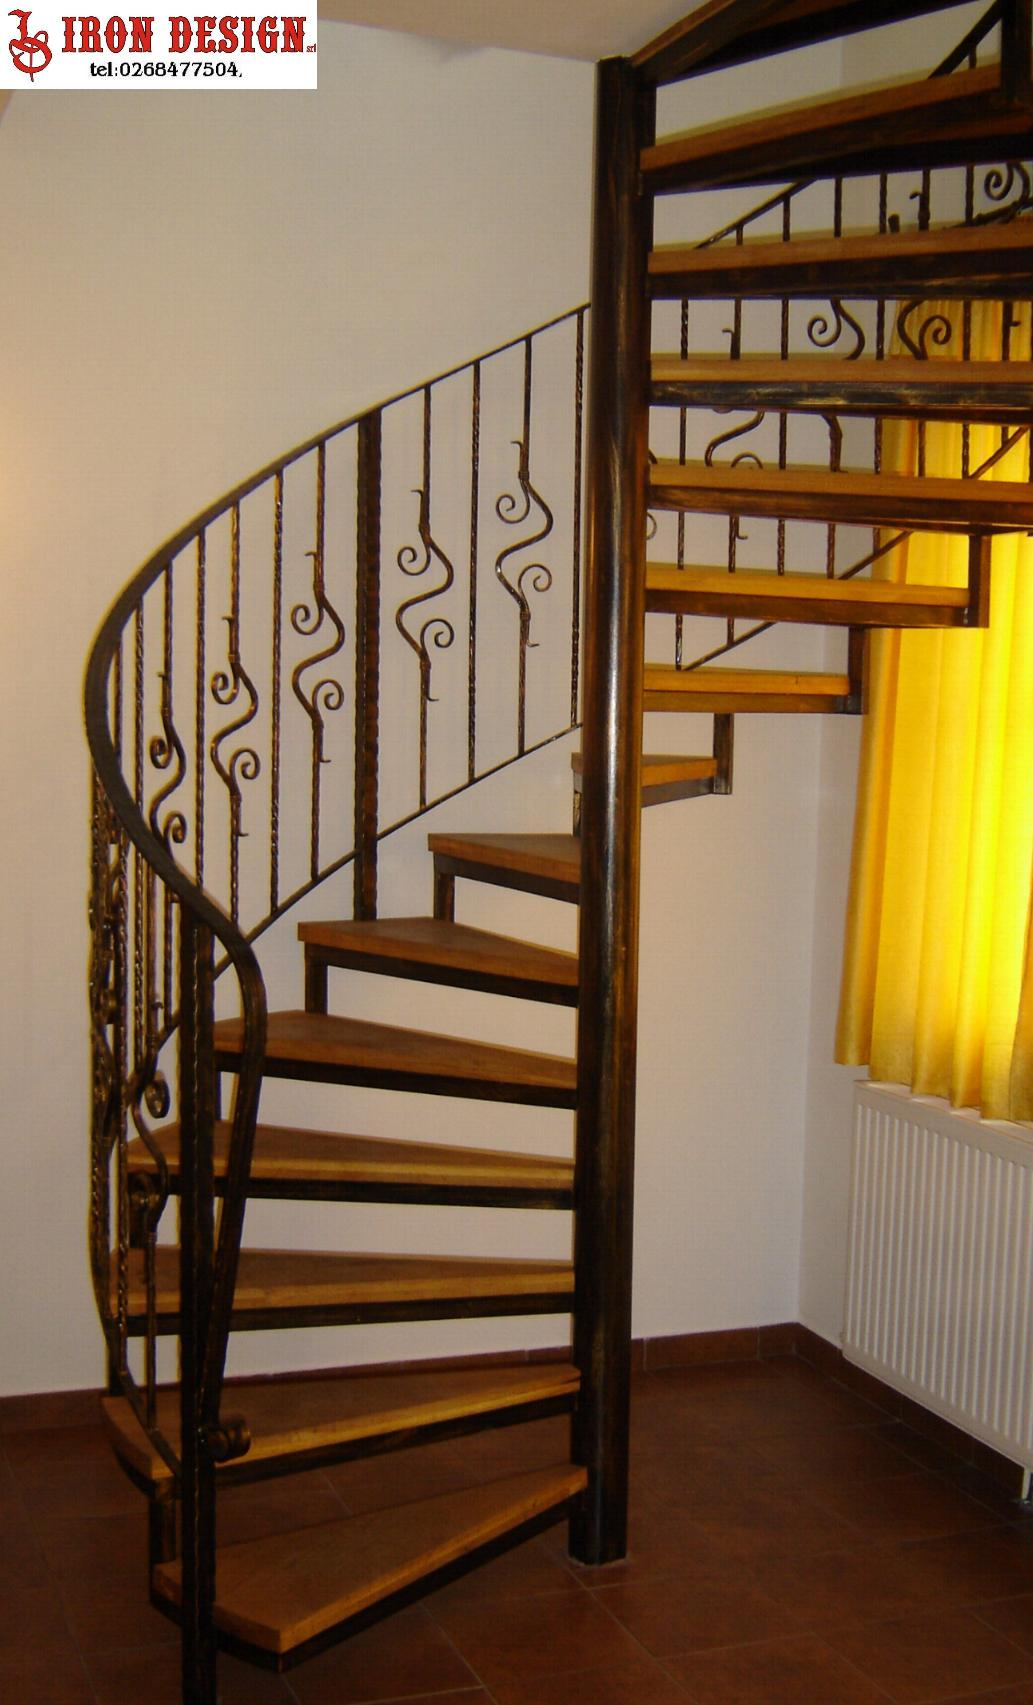 Iron Design Iron Staircase Iron Steel